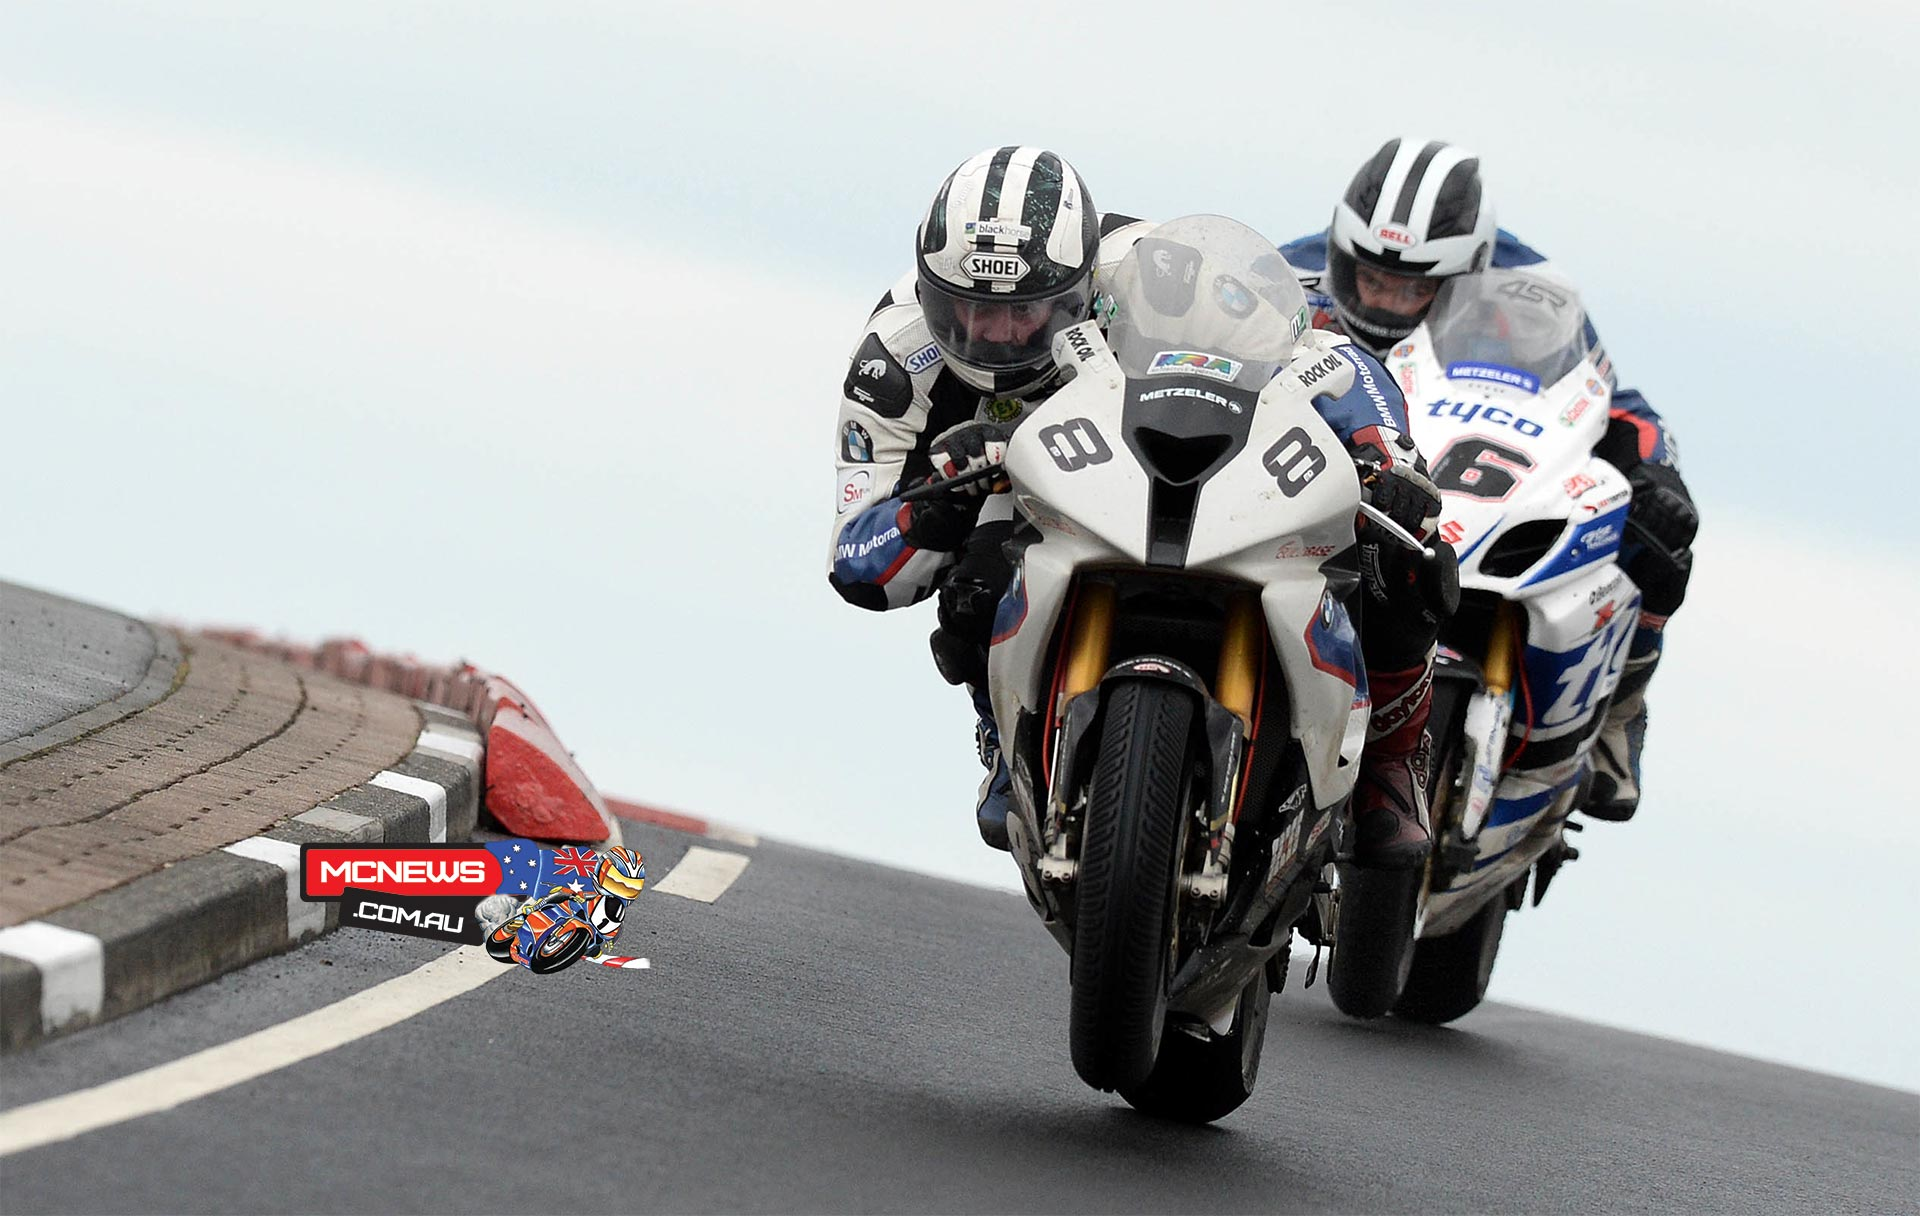 In a recent bombshell announcement Michael Dunlop will not continue on BMW machinery in 2015 after the German marque has aligned itself with TAS Racing, who in another surprise announcement have split with long term partners Suzuki.